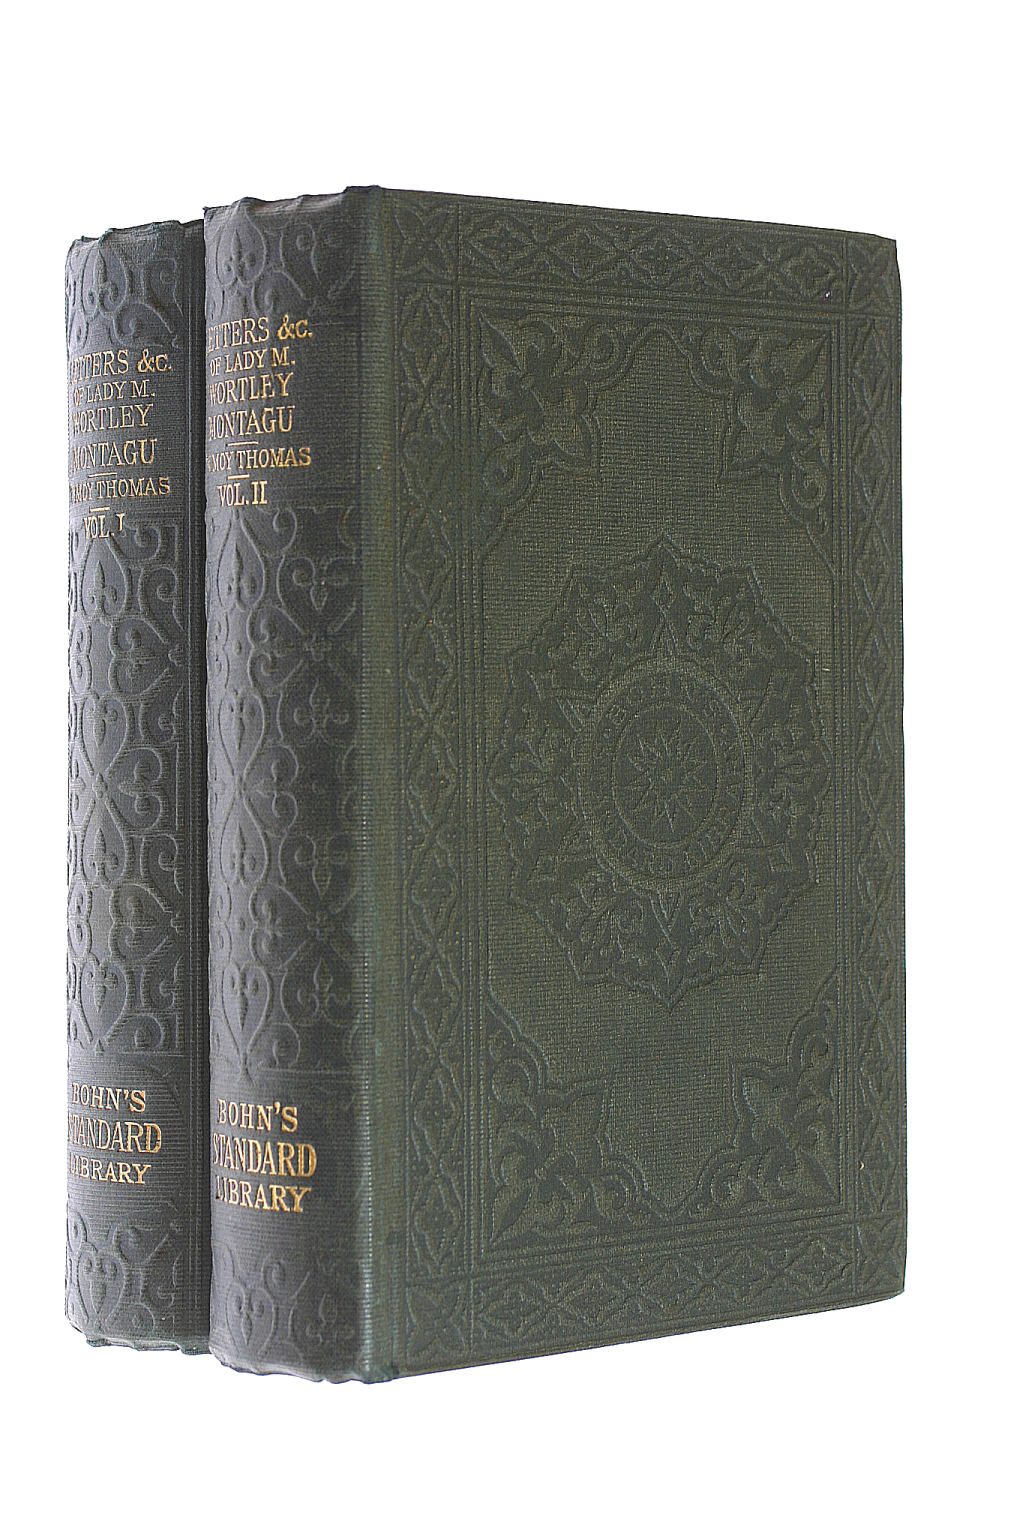 Image for The Letters and Works of Lady Mary Wortley Montagu Edited by Lord Wharncliffe with Additions and Corrections, and a Memoir By W. Moy Thomas